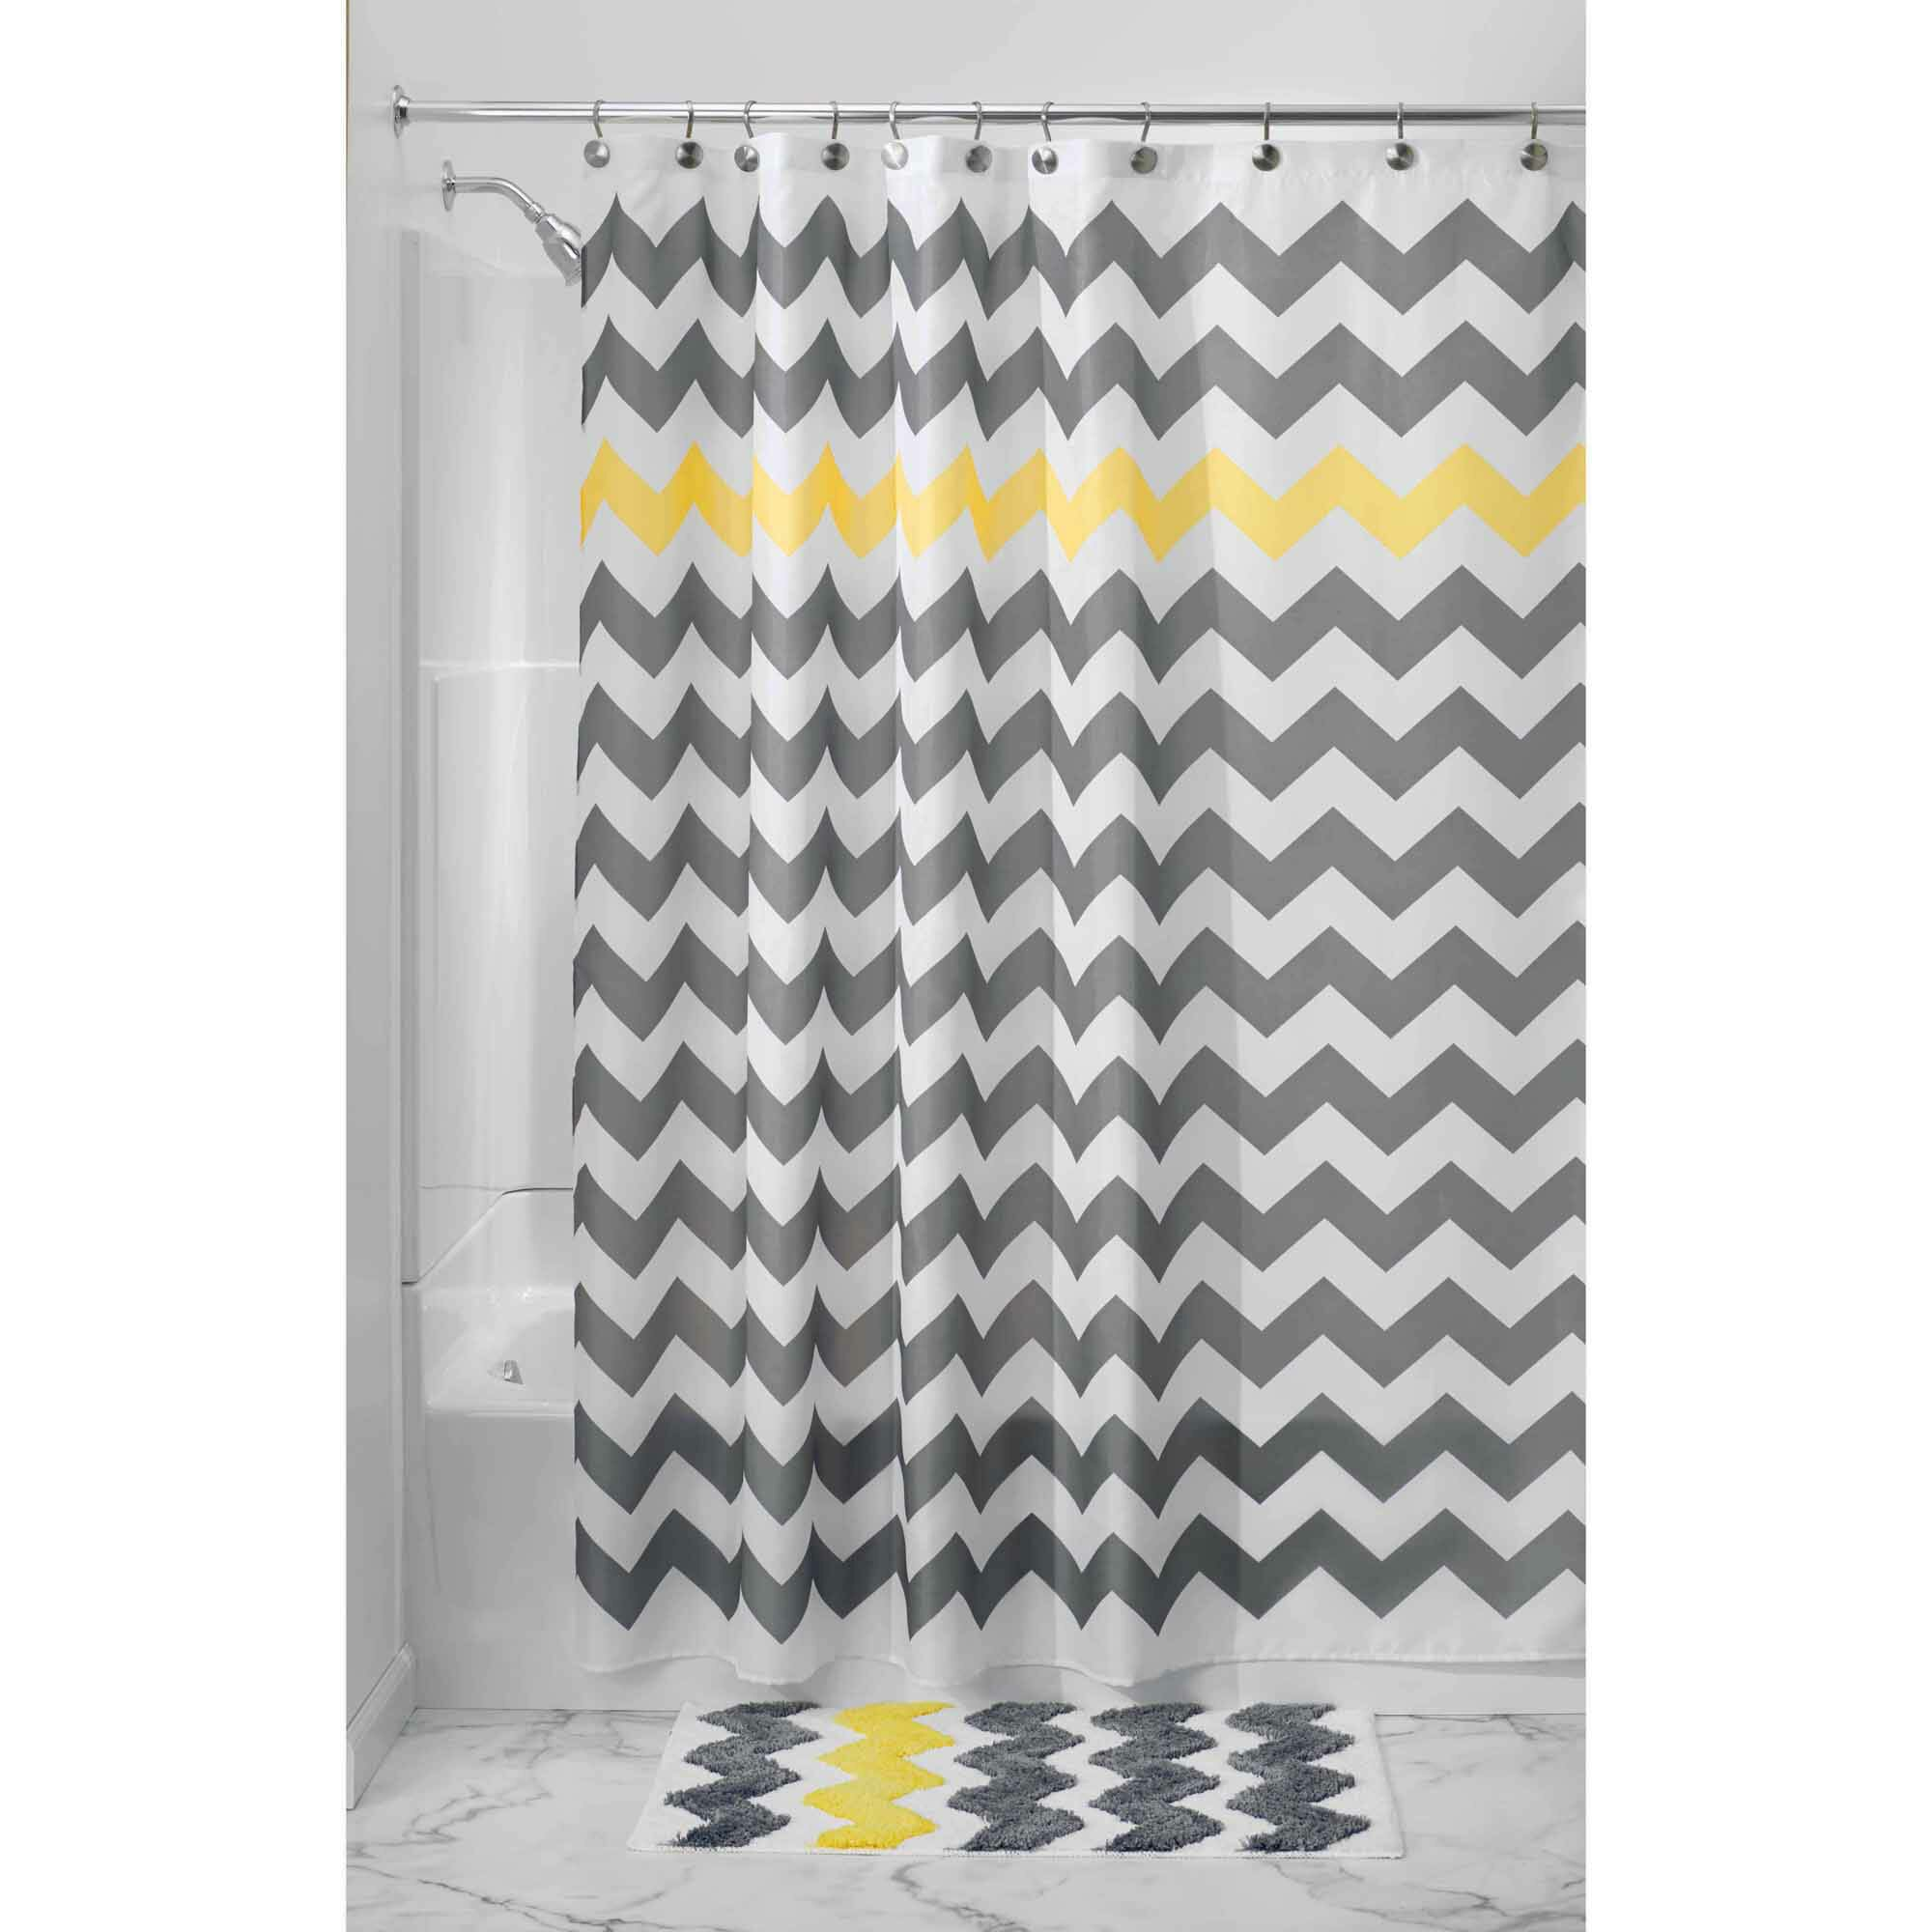 Neutral Shower Curtains | Walmart Shower Curtain | Matching Shower Curtain and Window Curtain